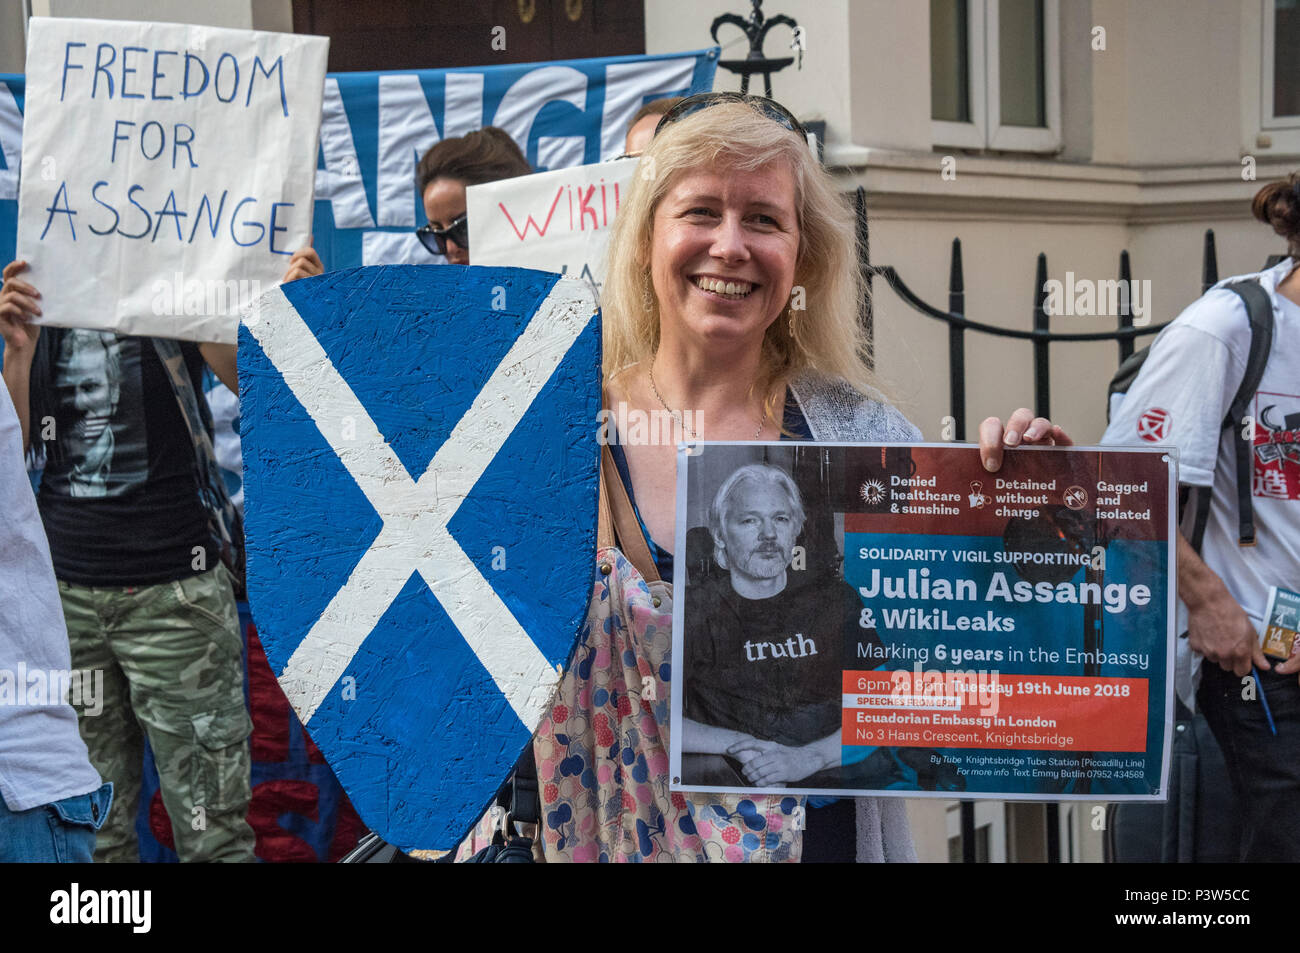 London, UK. 19th June 2018. A protester from Scotland with a saltire shield holds a poster at the rally outside the Ecuadorian Embassy in London calling for Julian Assange to be allowed safe passage to the place of his choice to mark six years since he was given asylum there. They called for the UK authorities to allow him to leave the embassy and go to the country of his choice without being arrested. Credit: Peter Marshall/Alamy Live News - Stock Image